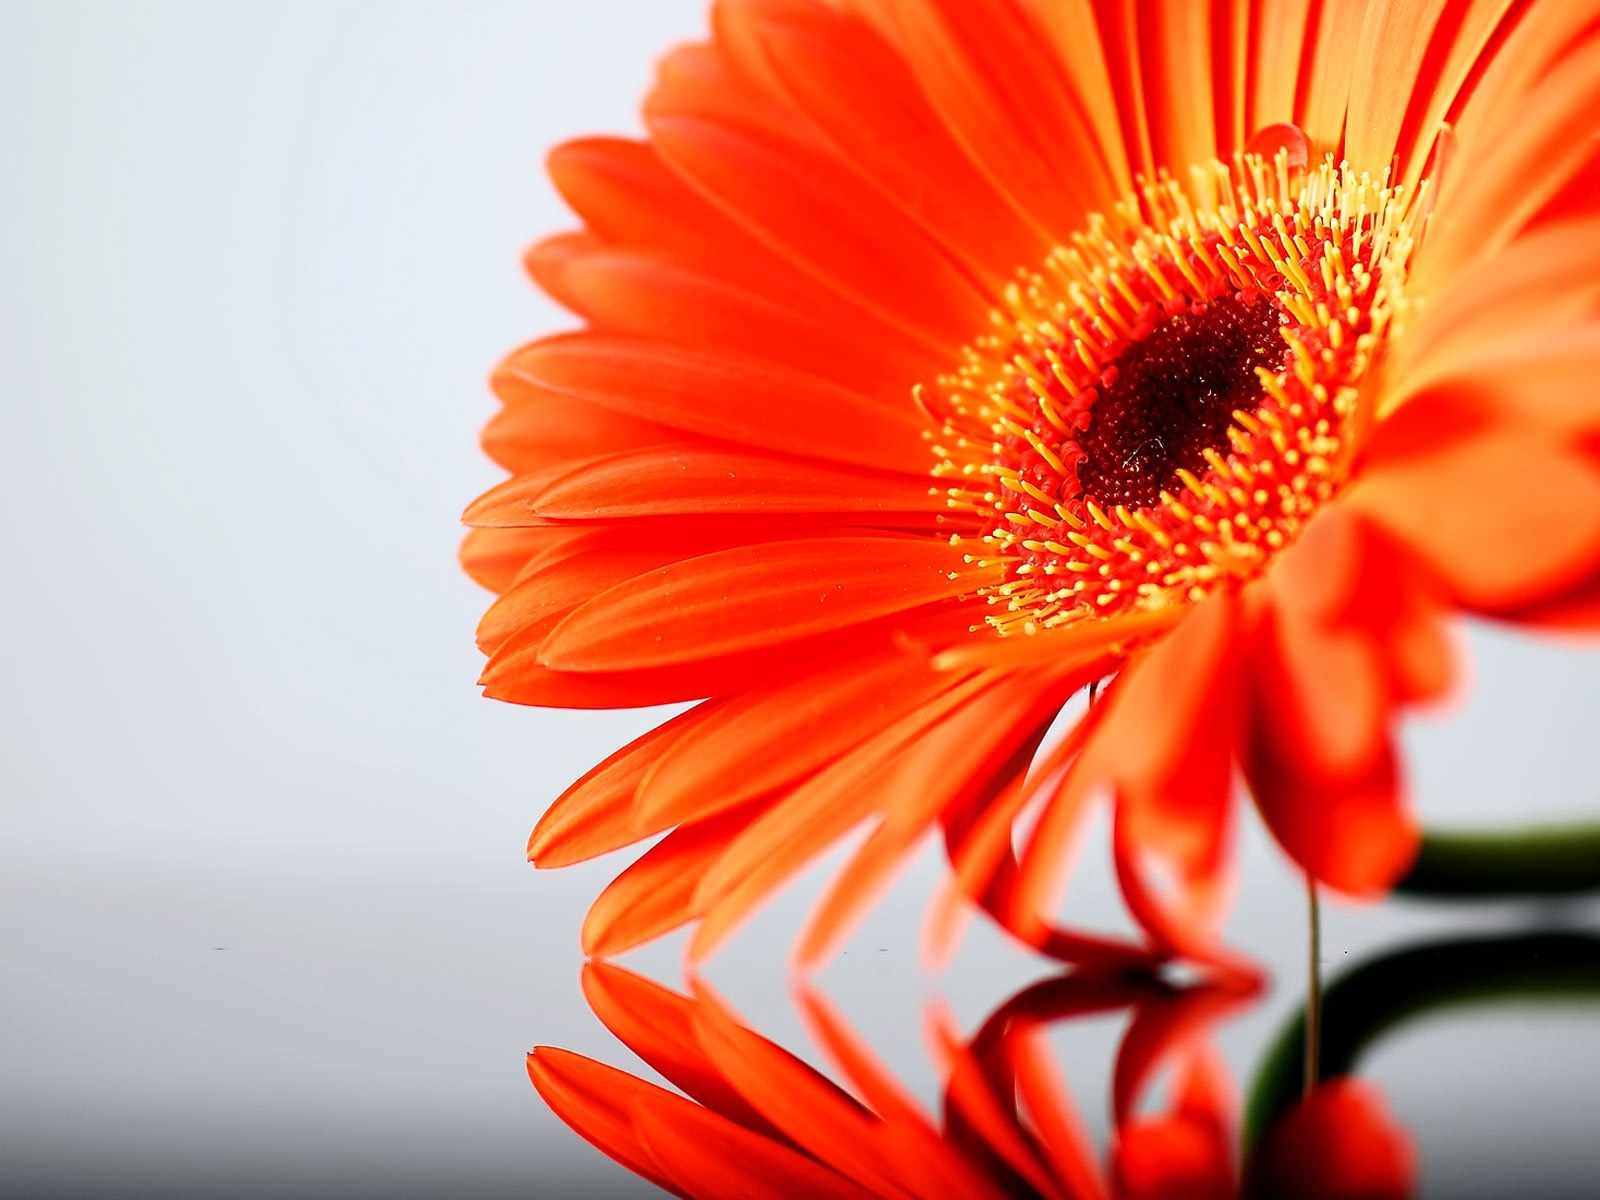 Orange Daisy Flower Photo